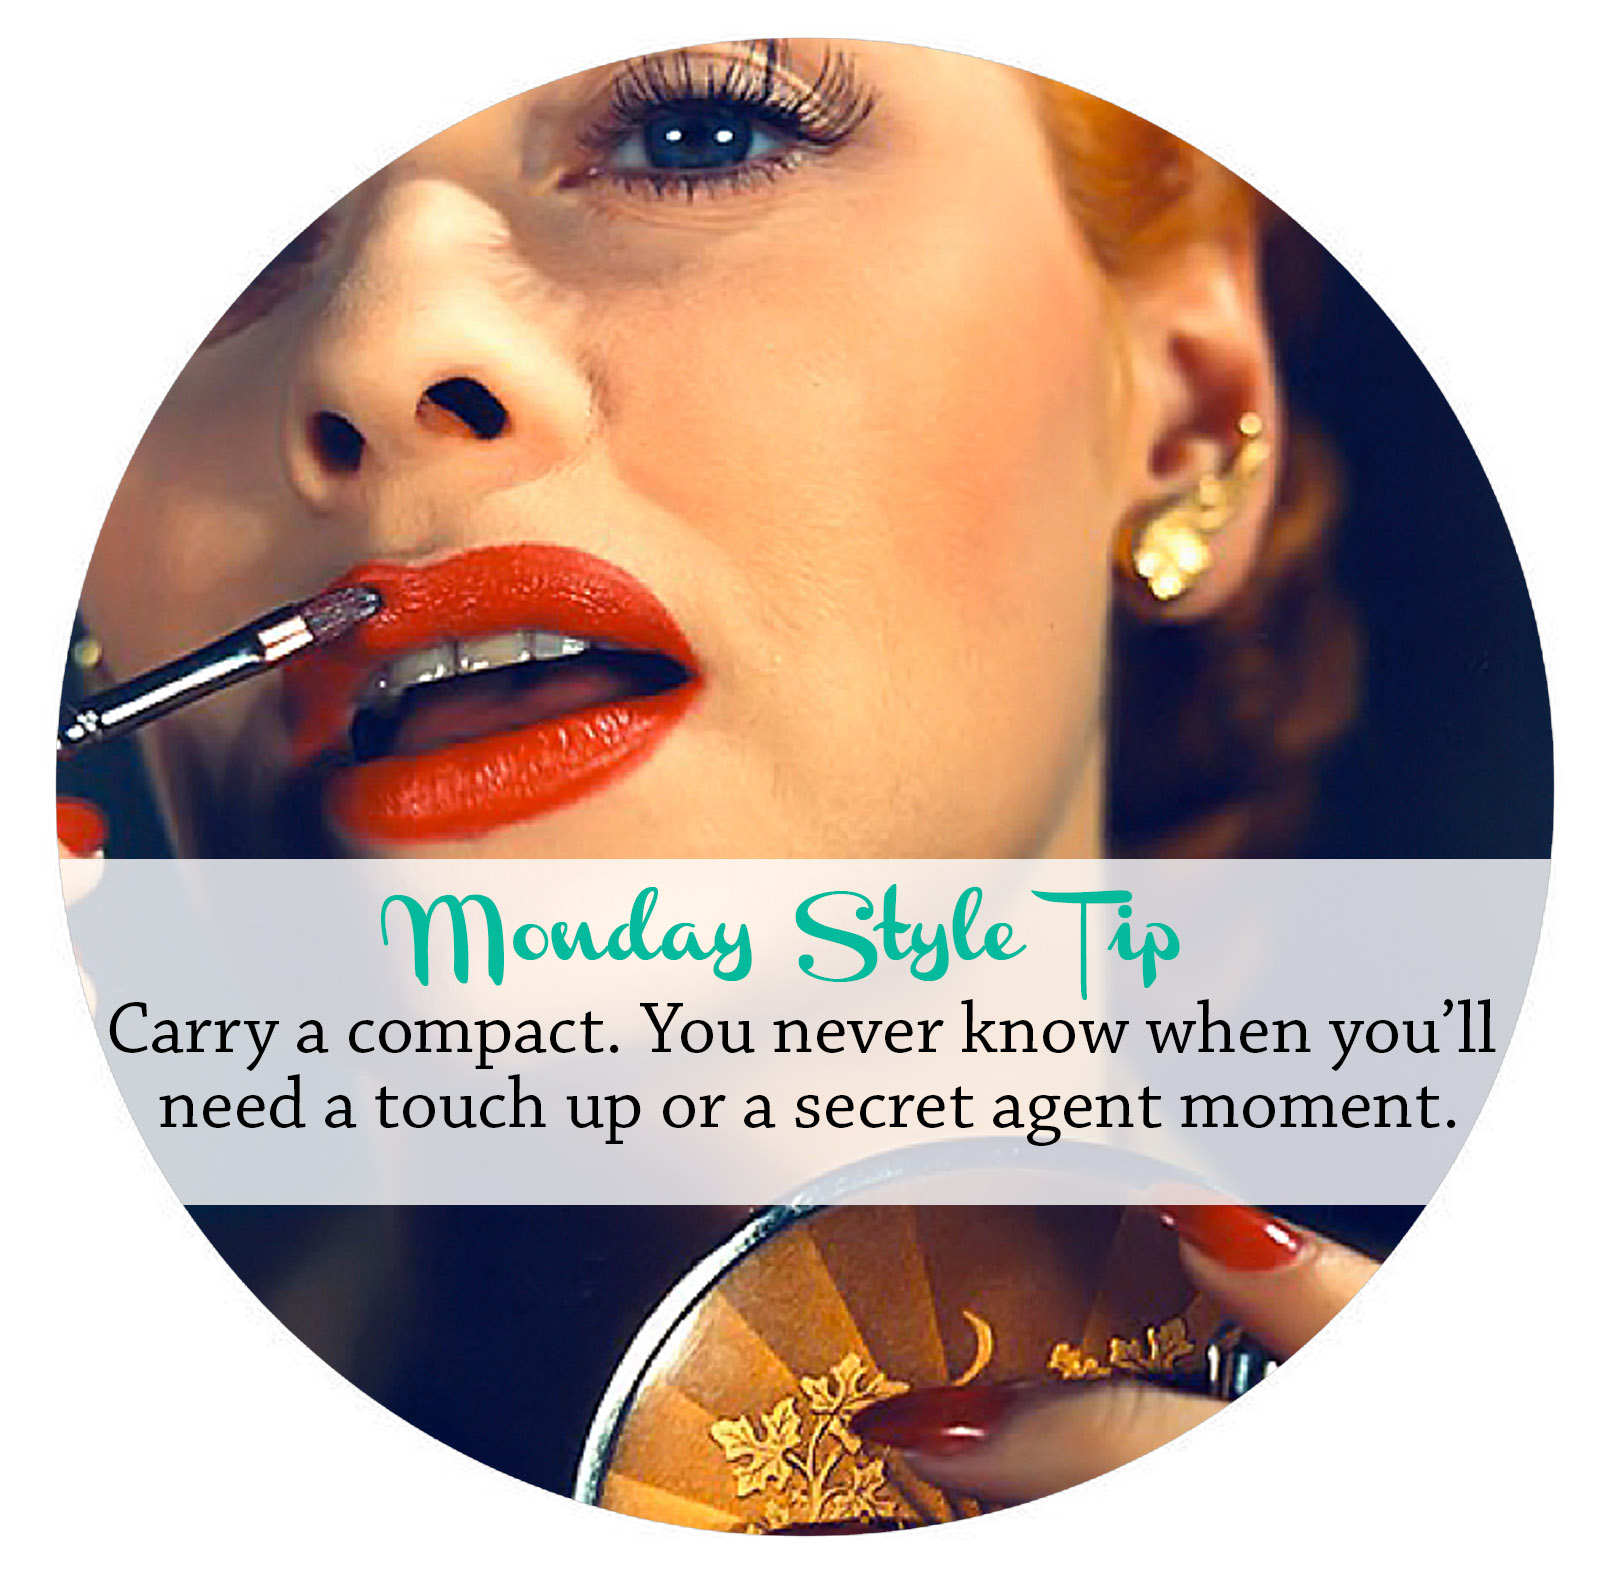 inspiration, Monday style tip, fashion, tip, advice, style, style file, beckon couture, clothing, vintage, pinup, help,red lips, lipstick, compact, mirror